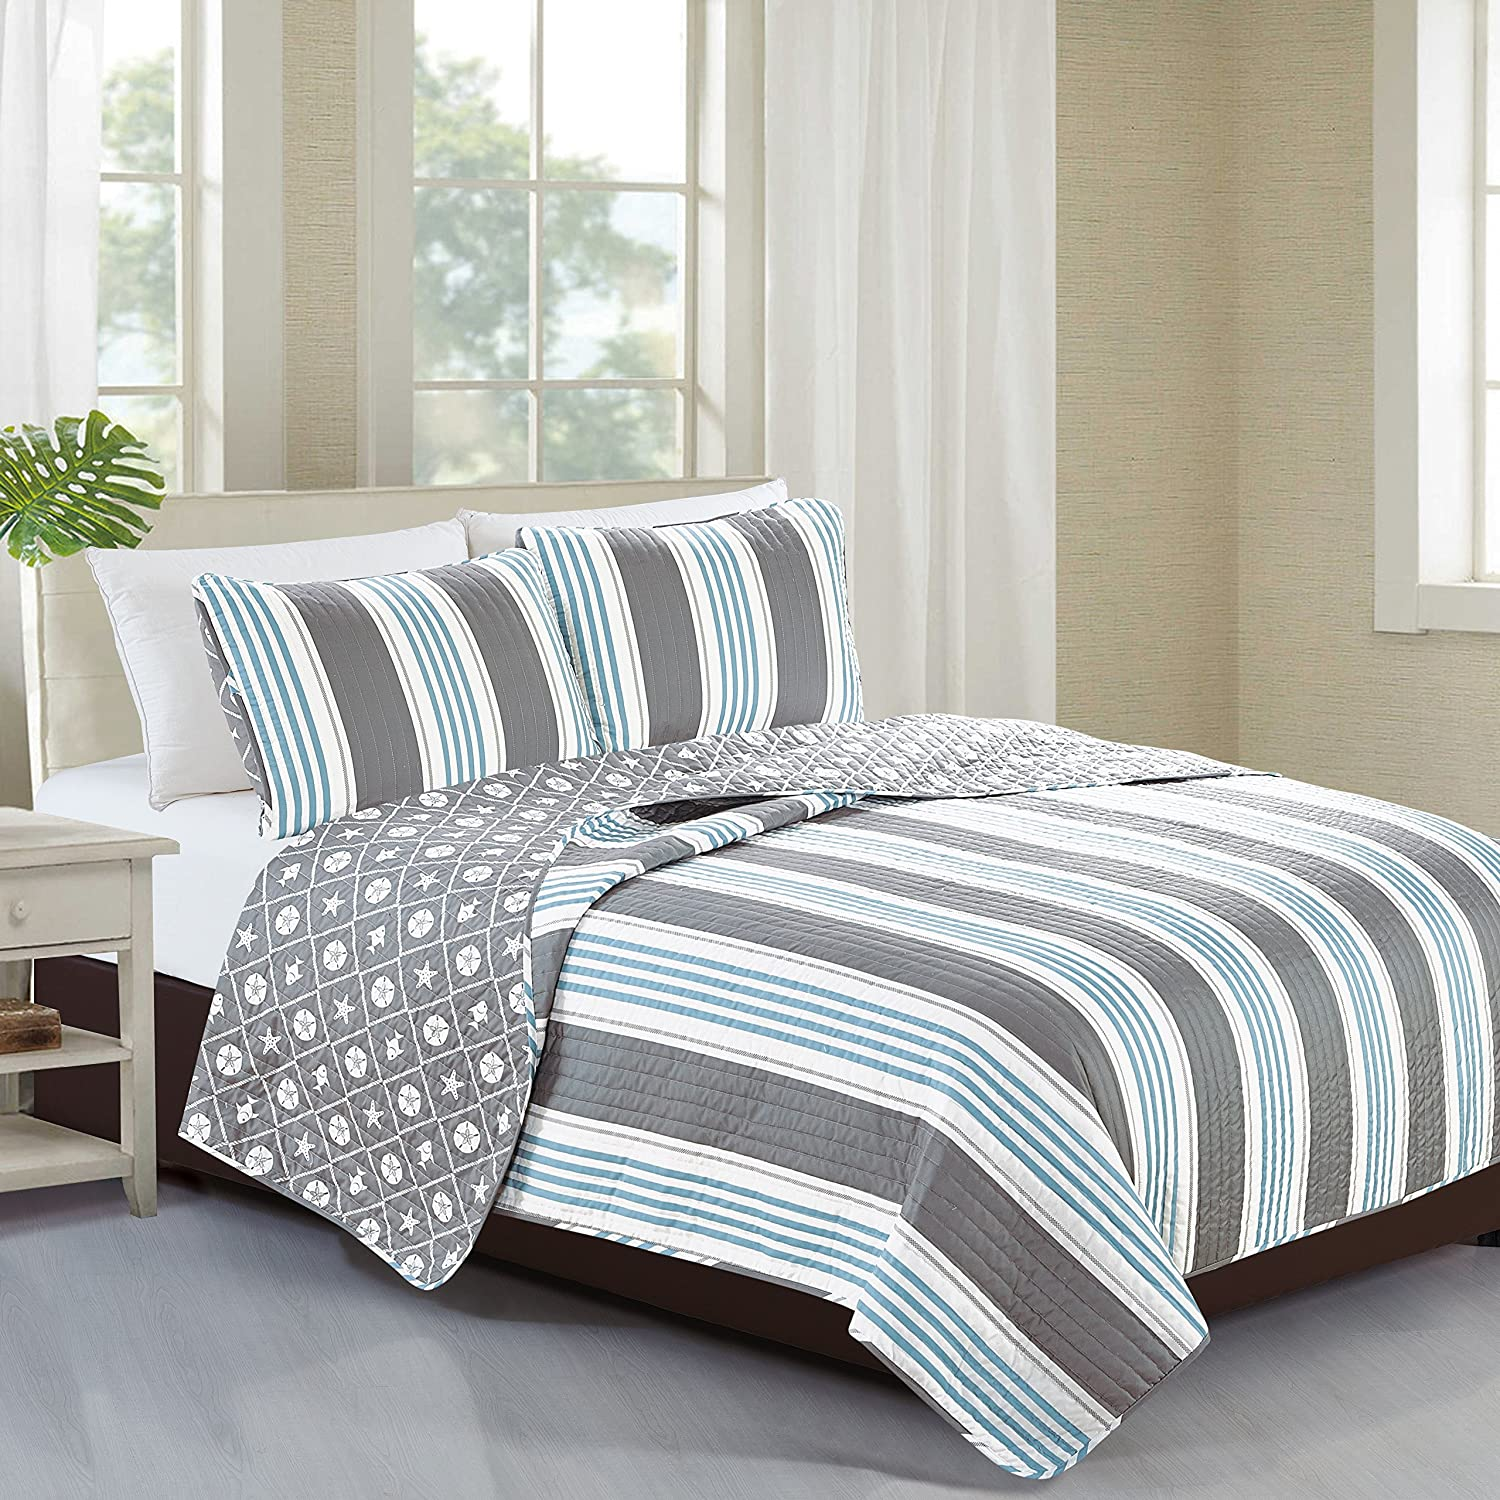 Home Fashion Designs 2-Piece Coastal Beach Theme Quilt Set with Shams. Soft All-Season Luxury Microfiber Reversible Bedspread and Coverlet. St. Croix Collection Brand. (Twin)